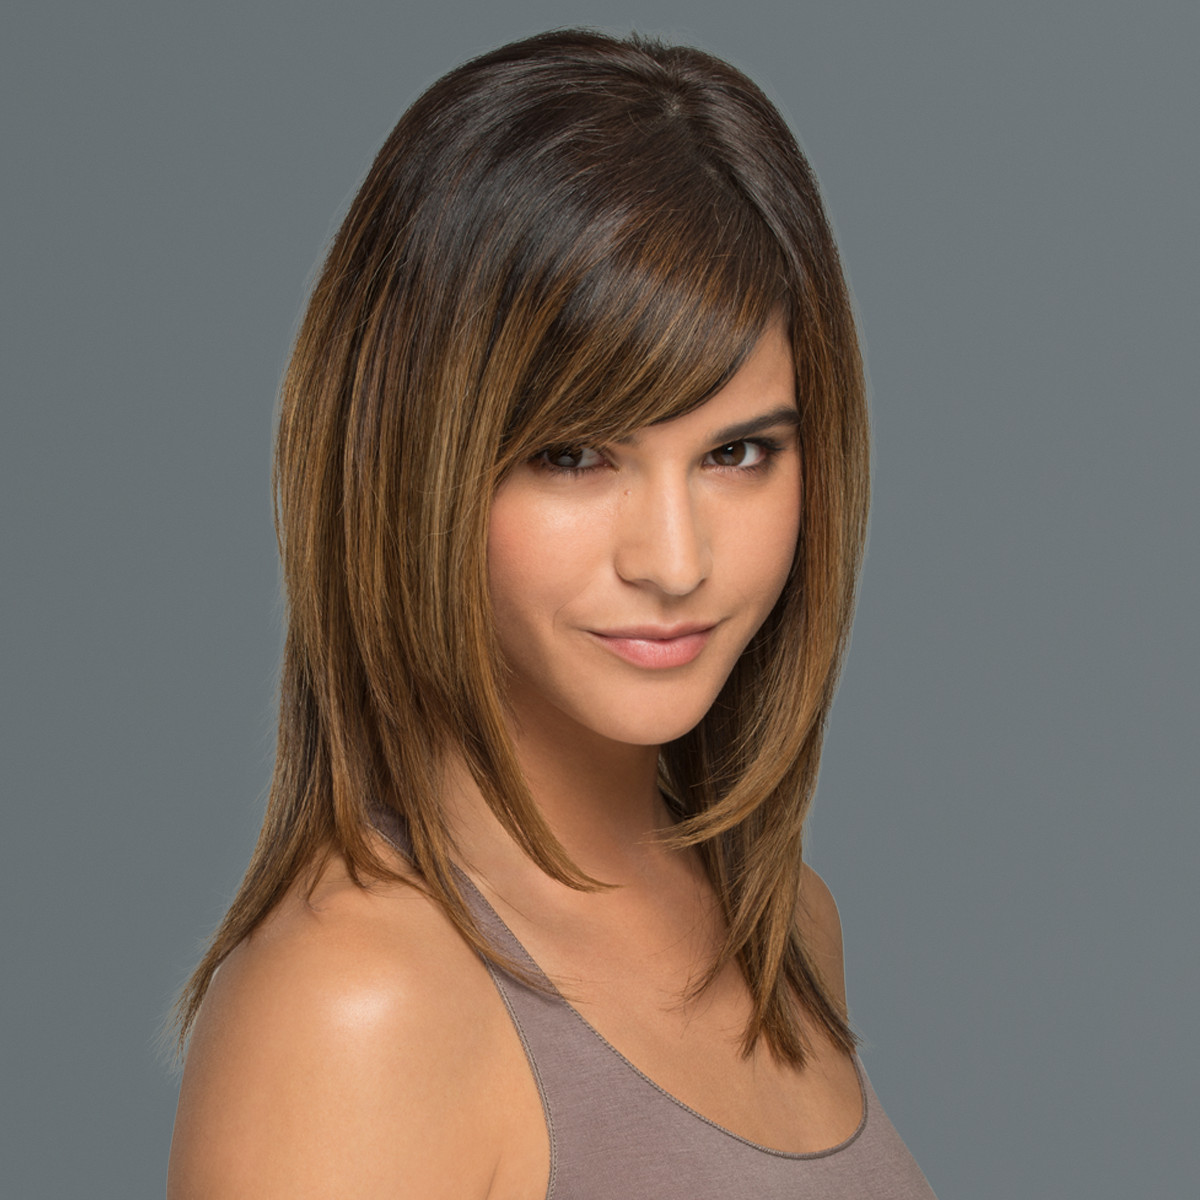 Best ideas about Female Haircuts . Save or Pin Classic Sleek Lob Haircut Women s Hairstyles Now.